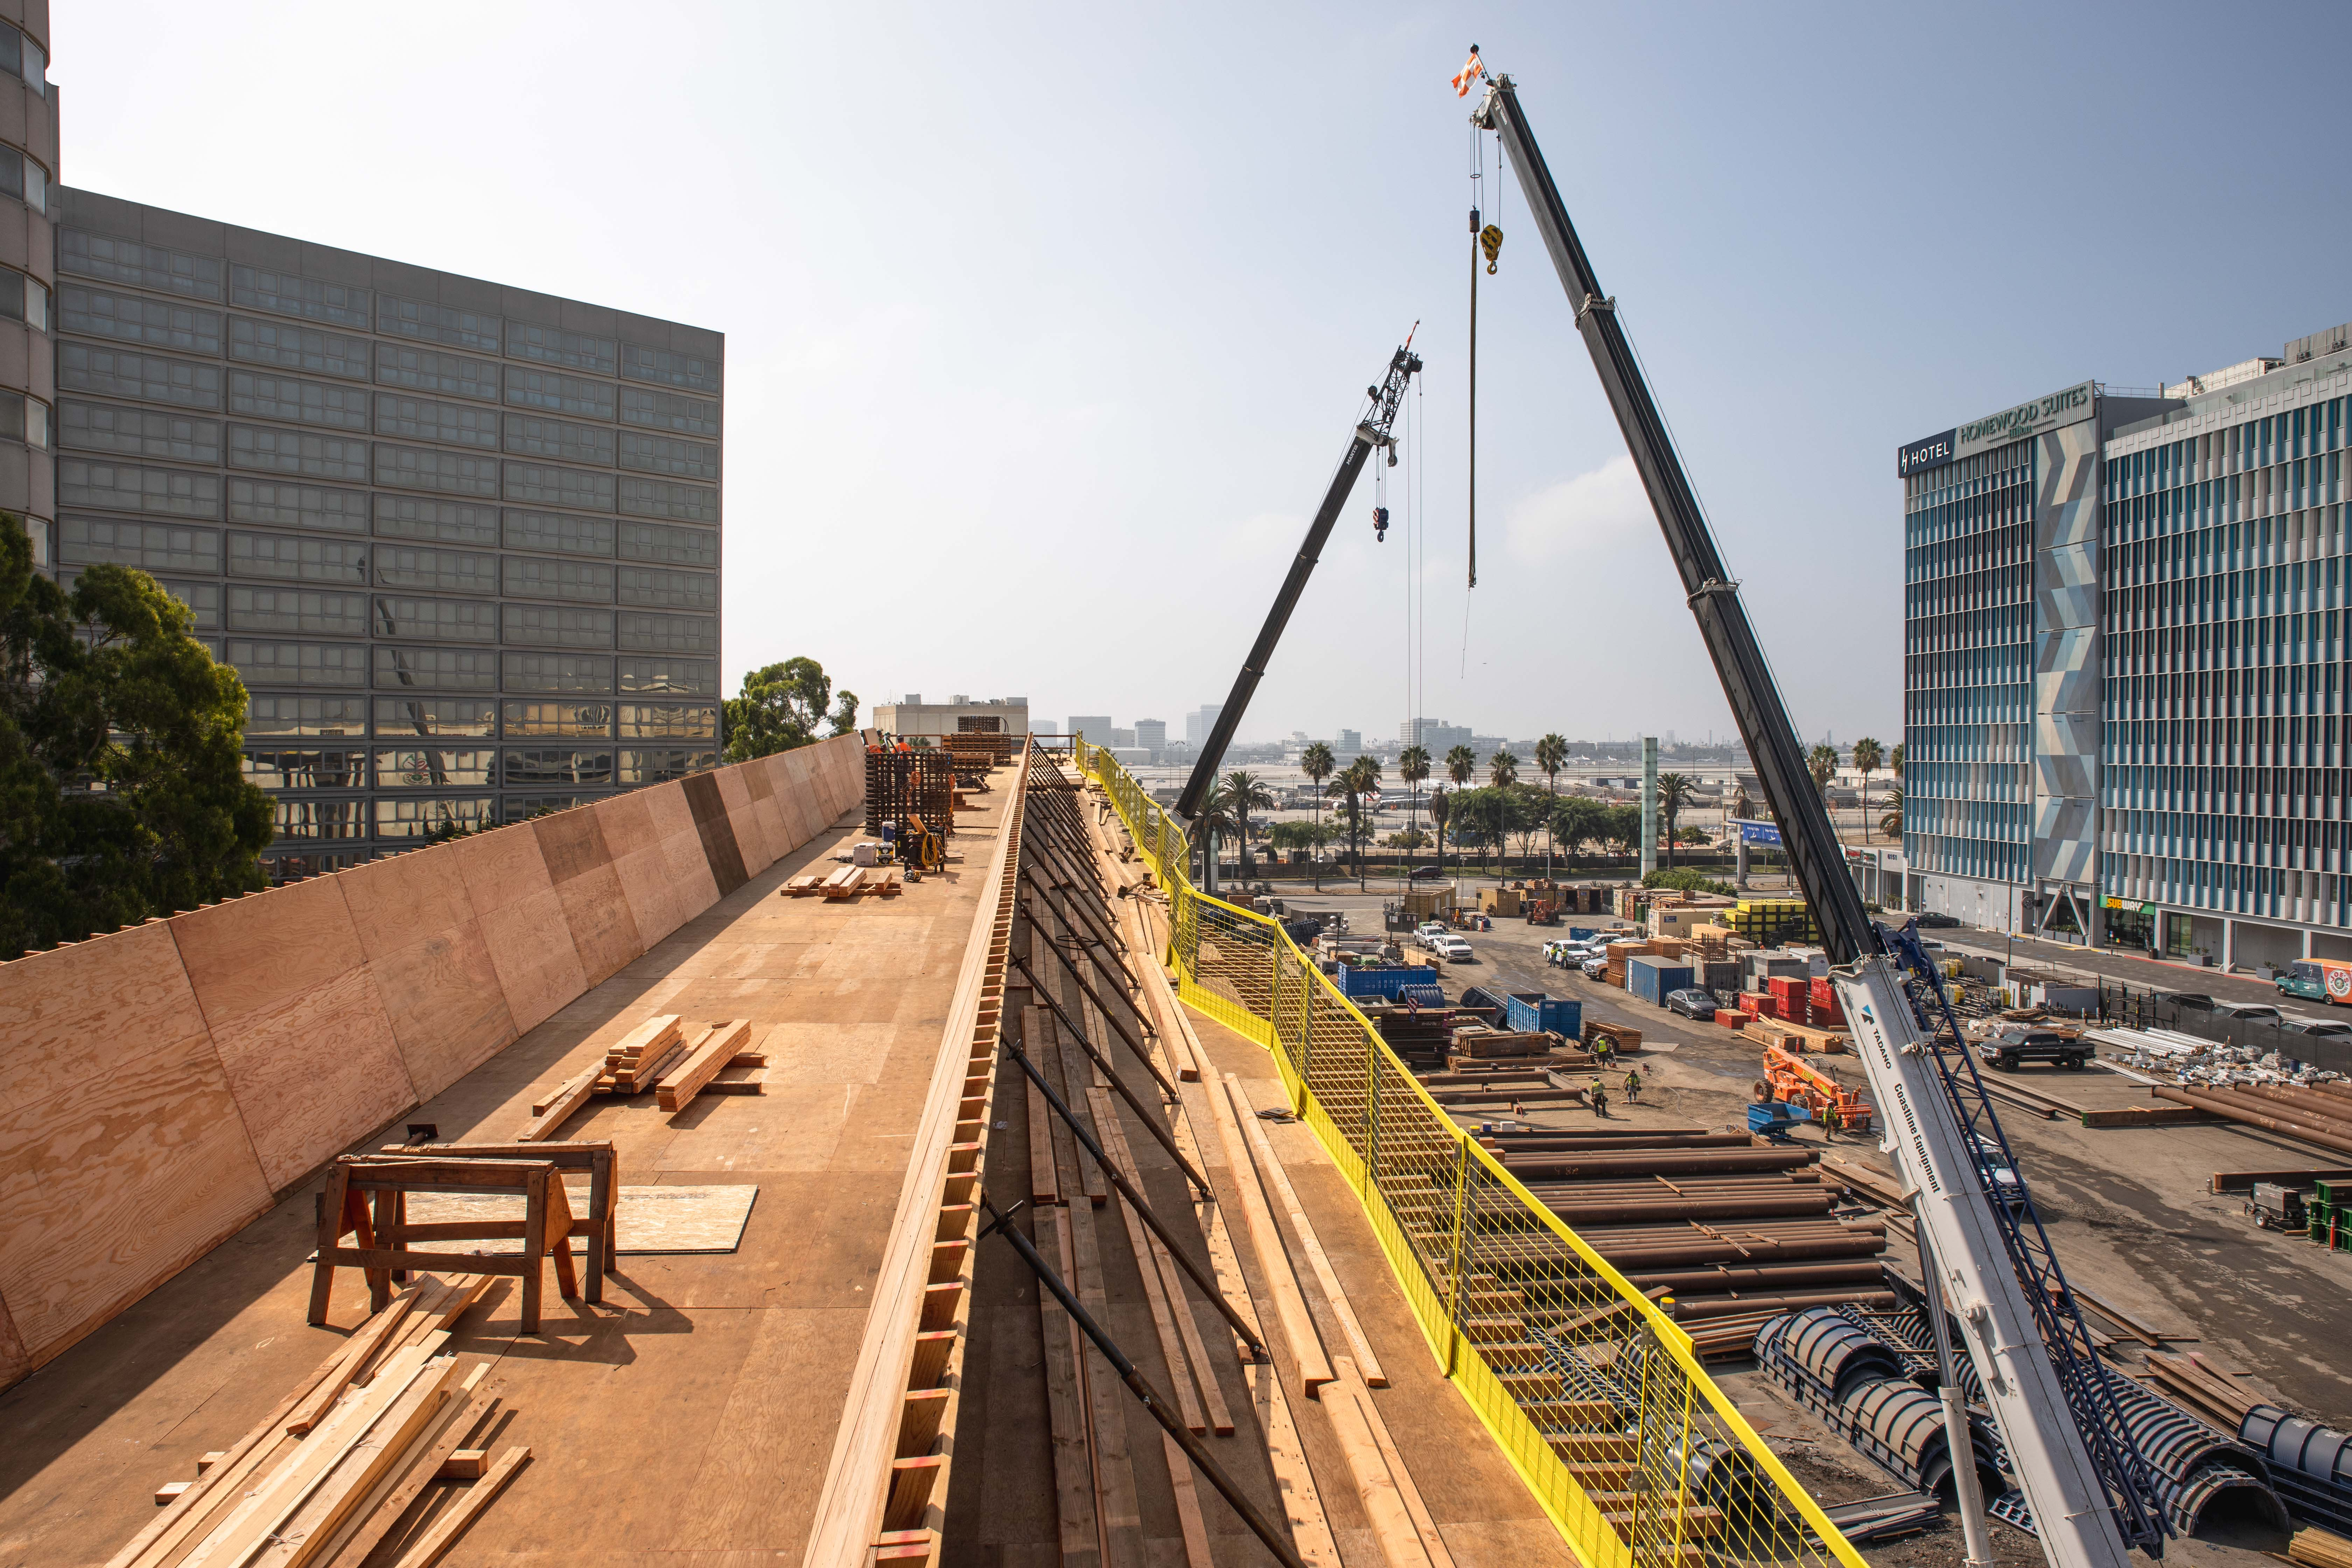 Preparations for concrete placement continue as the APM guideway approaches Century Boulevard.